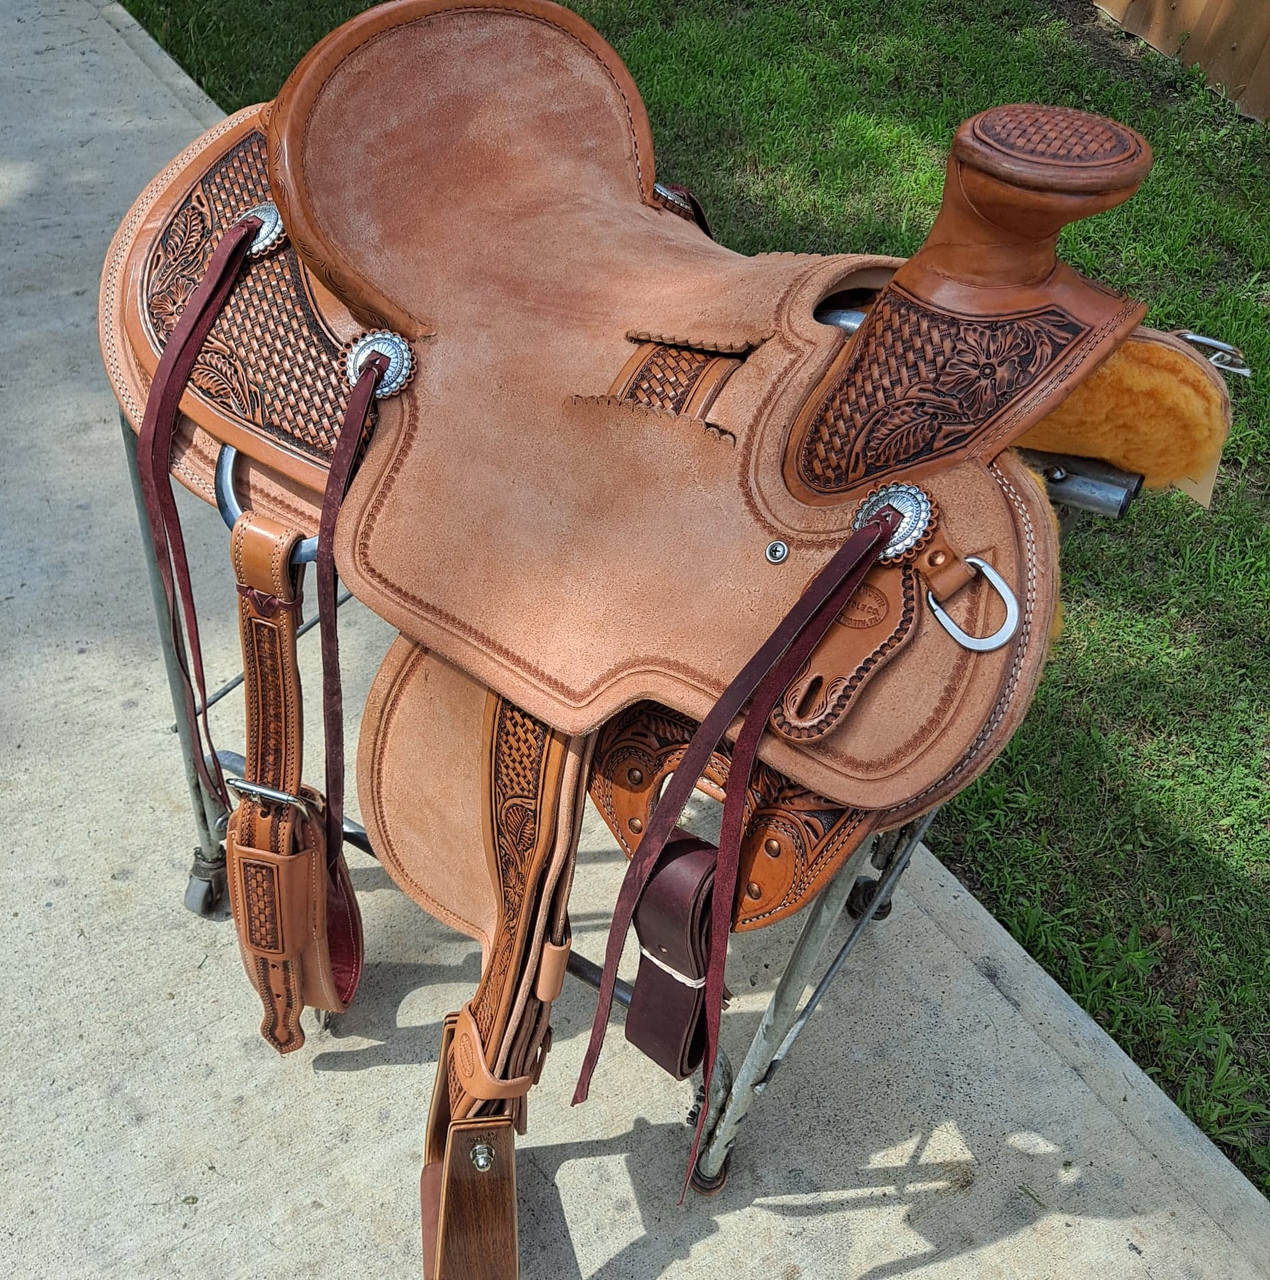 New Wade Saddle by Fort Worth Saddle Co with 16 inch seat. S1302